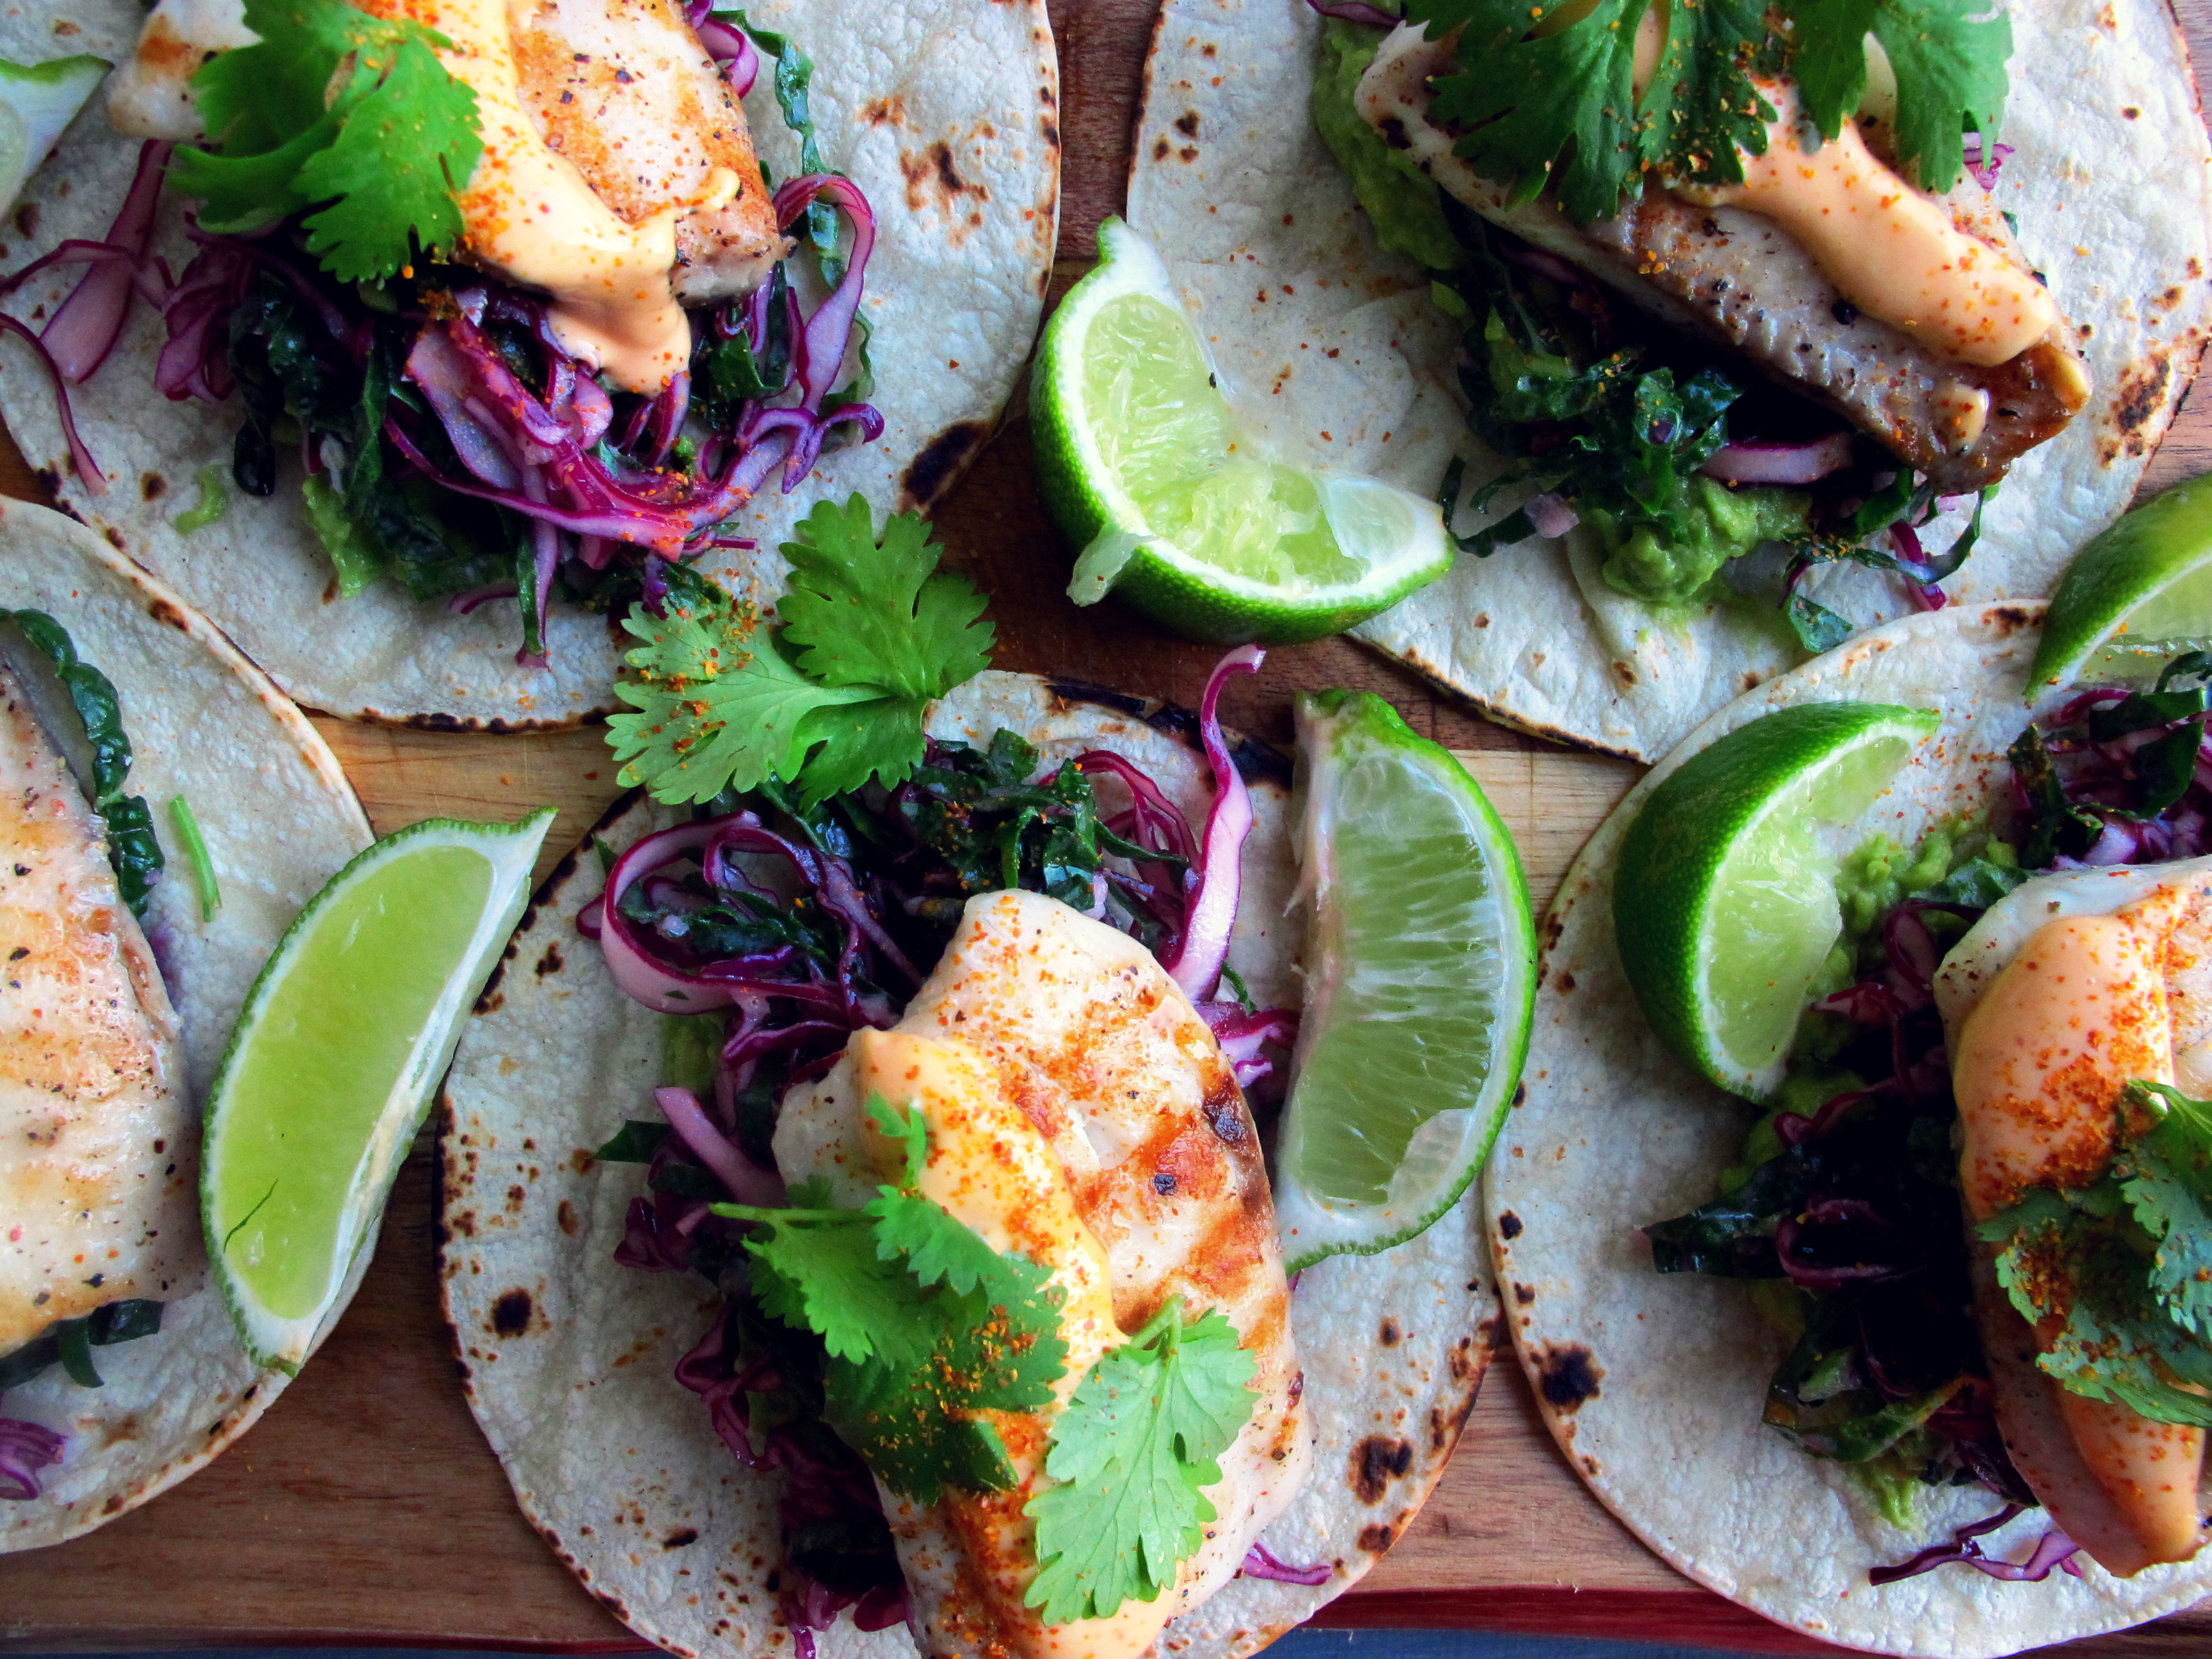 Fish Tacos with an Asian Red Cabbage and Kale Slaw